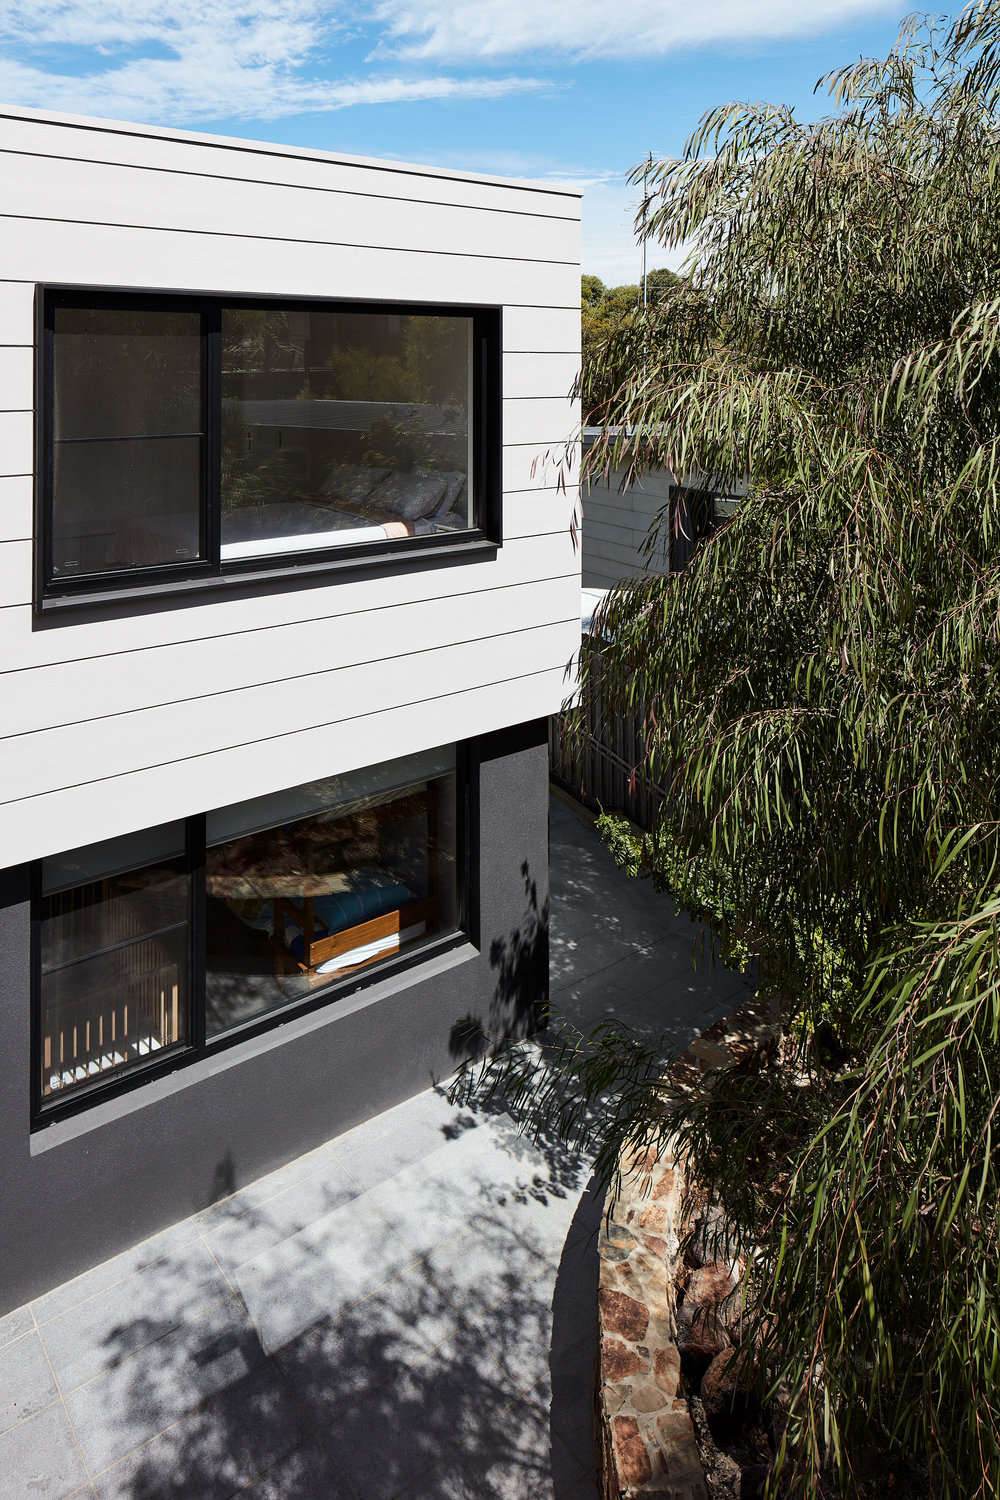 nathan-k-davis-architecture-architectural-photography-interior-exterior-residential-surfcoast-anglesea-house-5